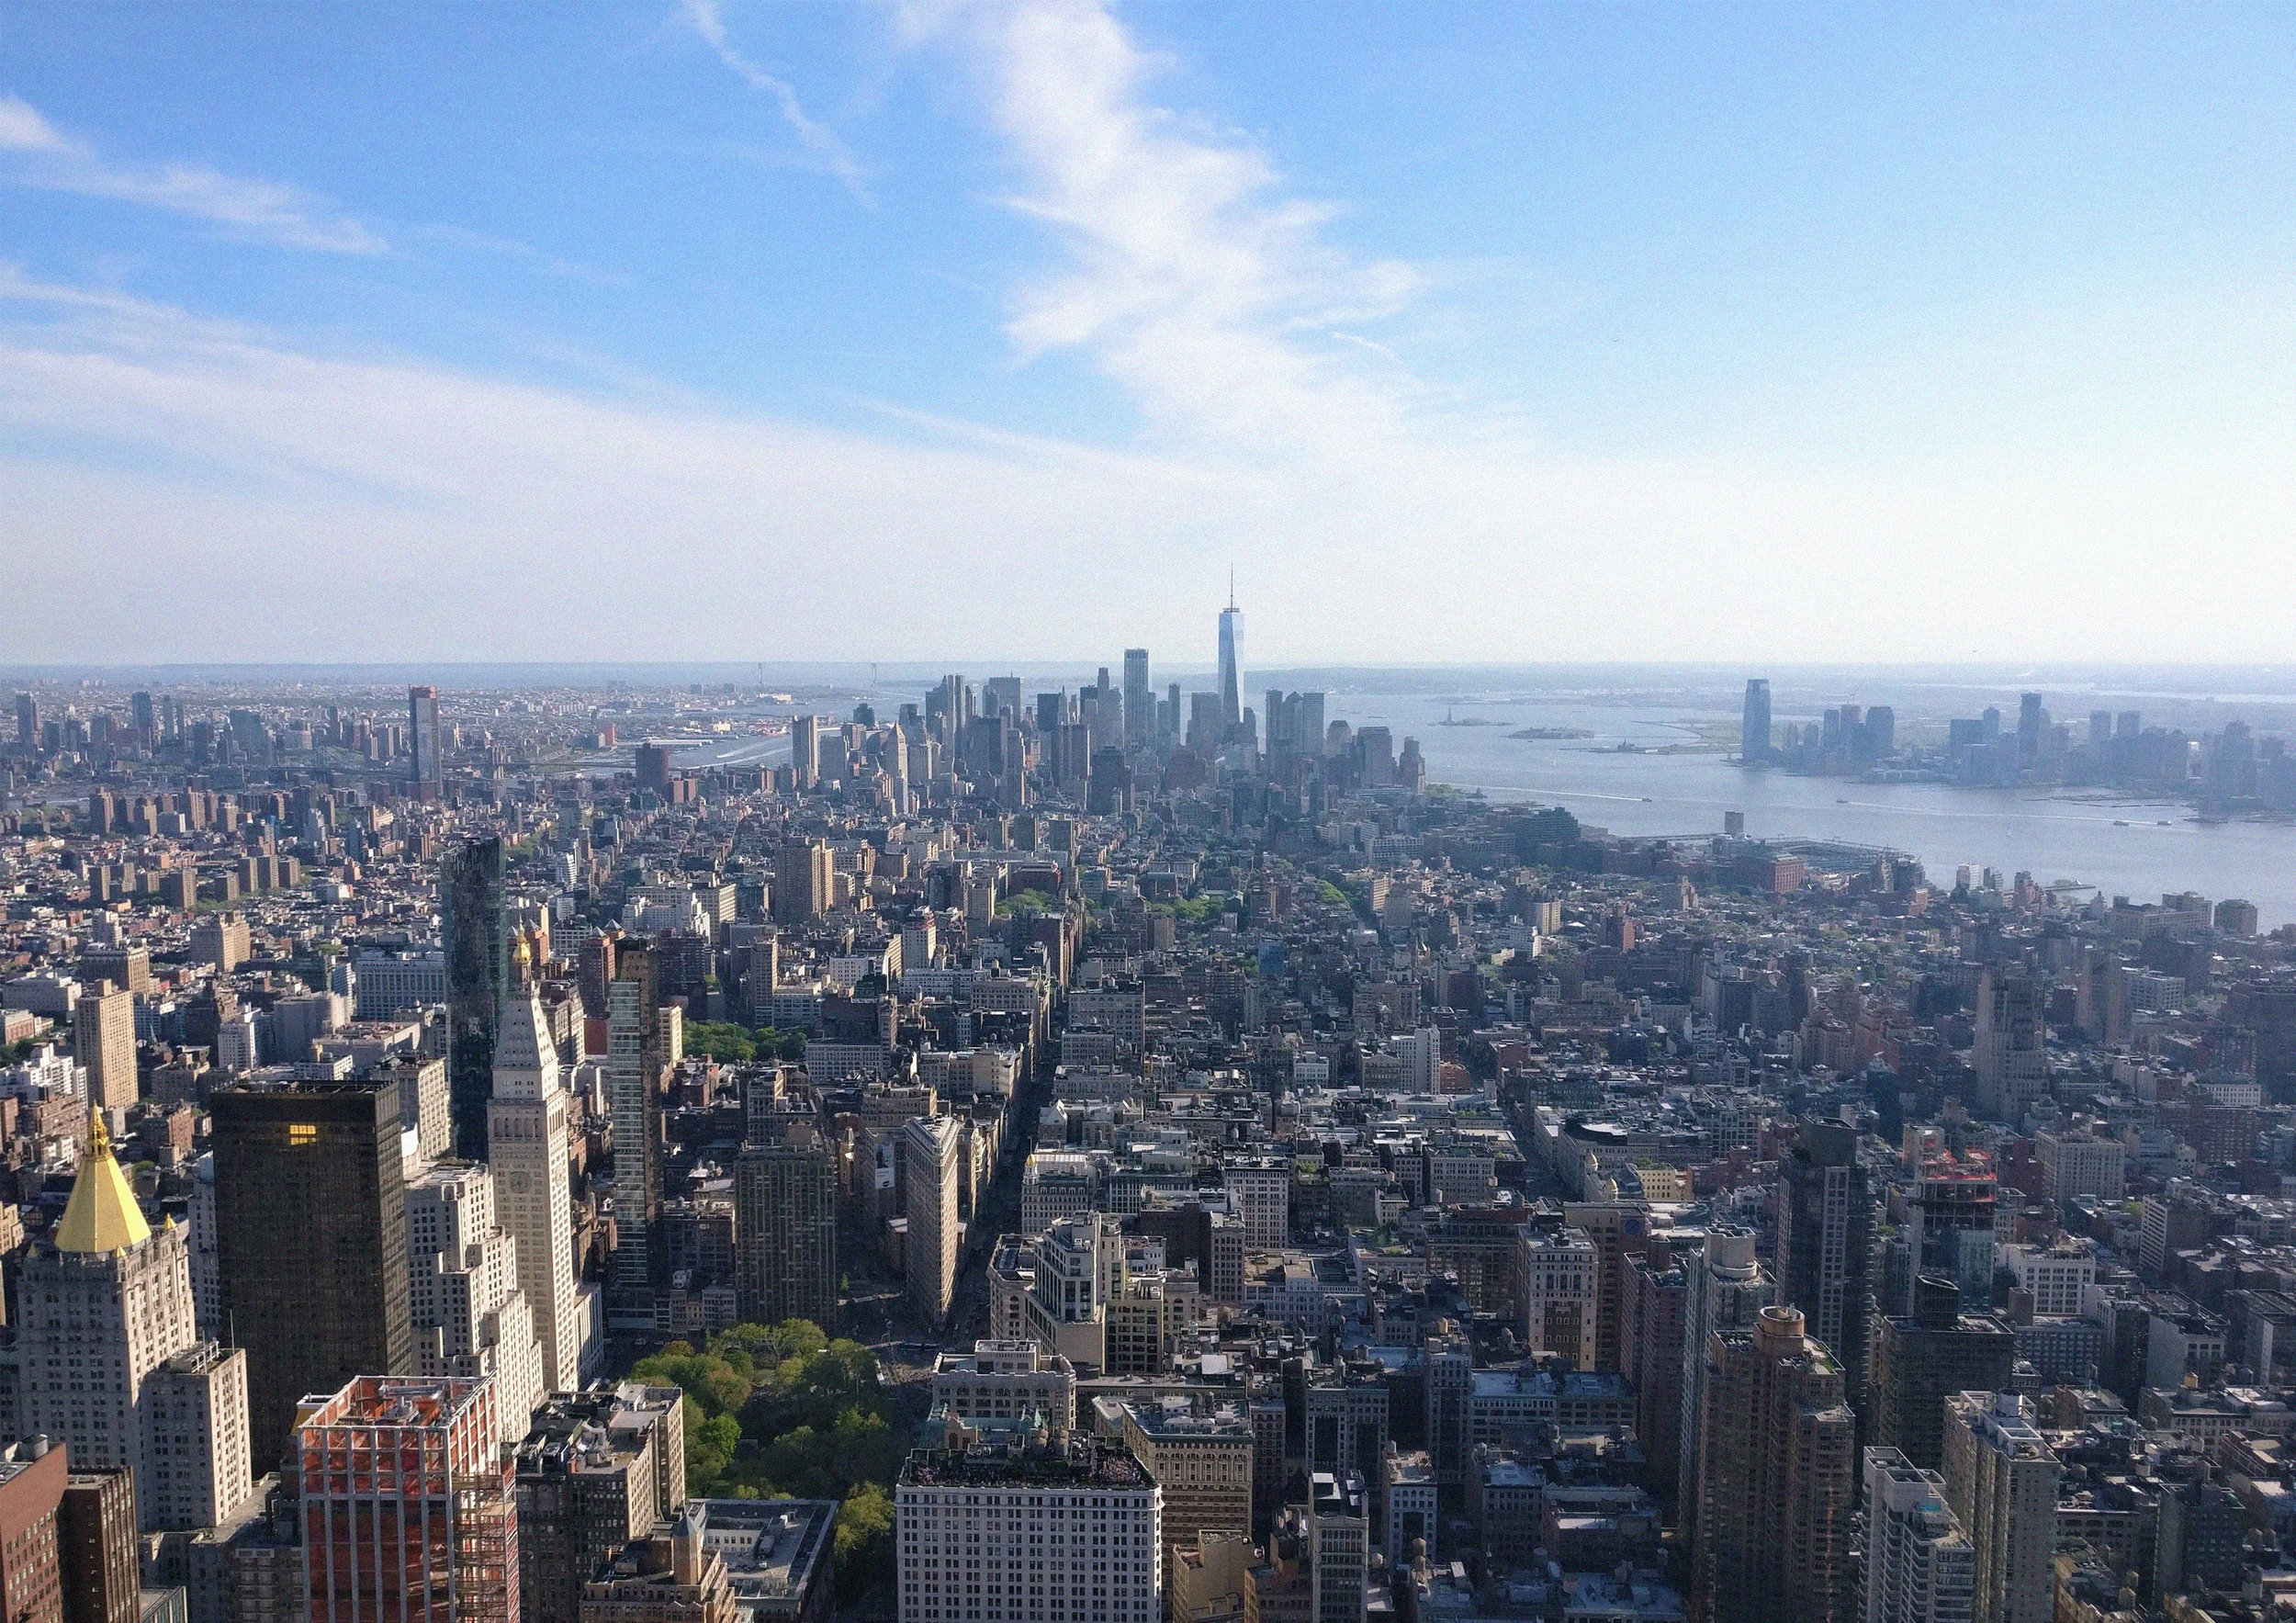 On top of Empire State Building